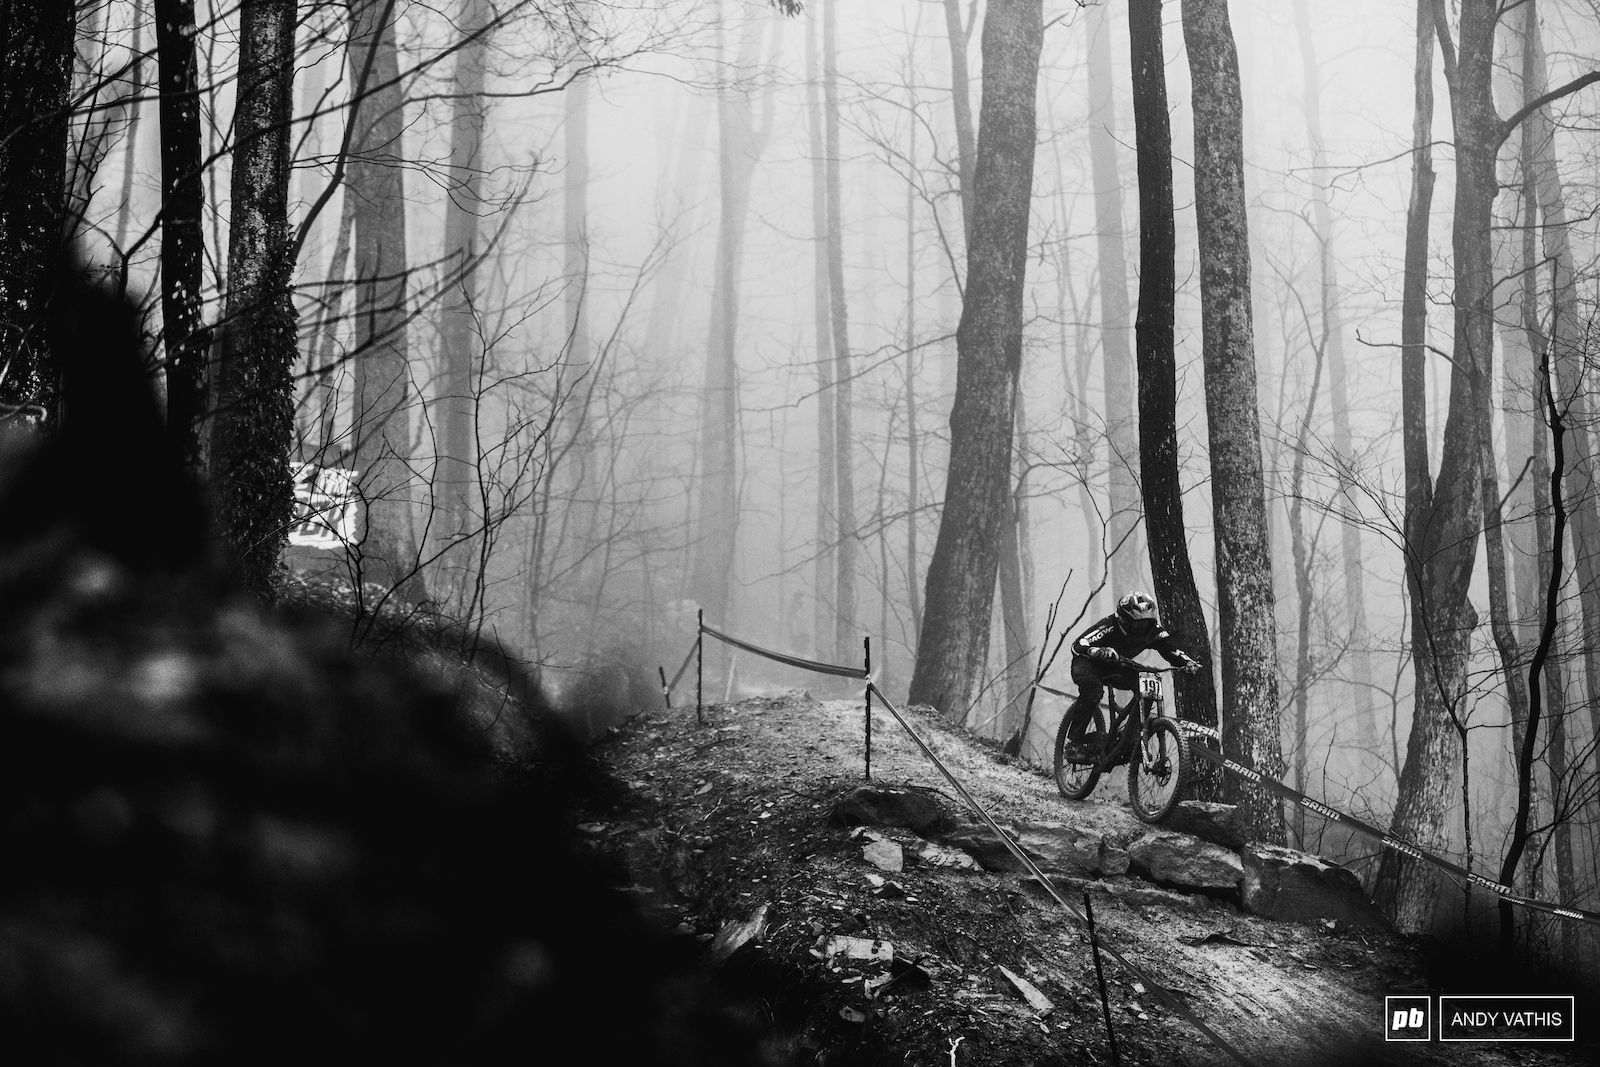 The fog lingered in the woods all day long but at least the rain held up until the last few riders down.